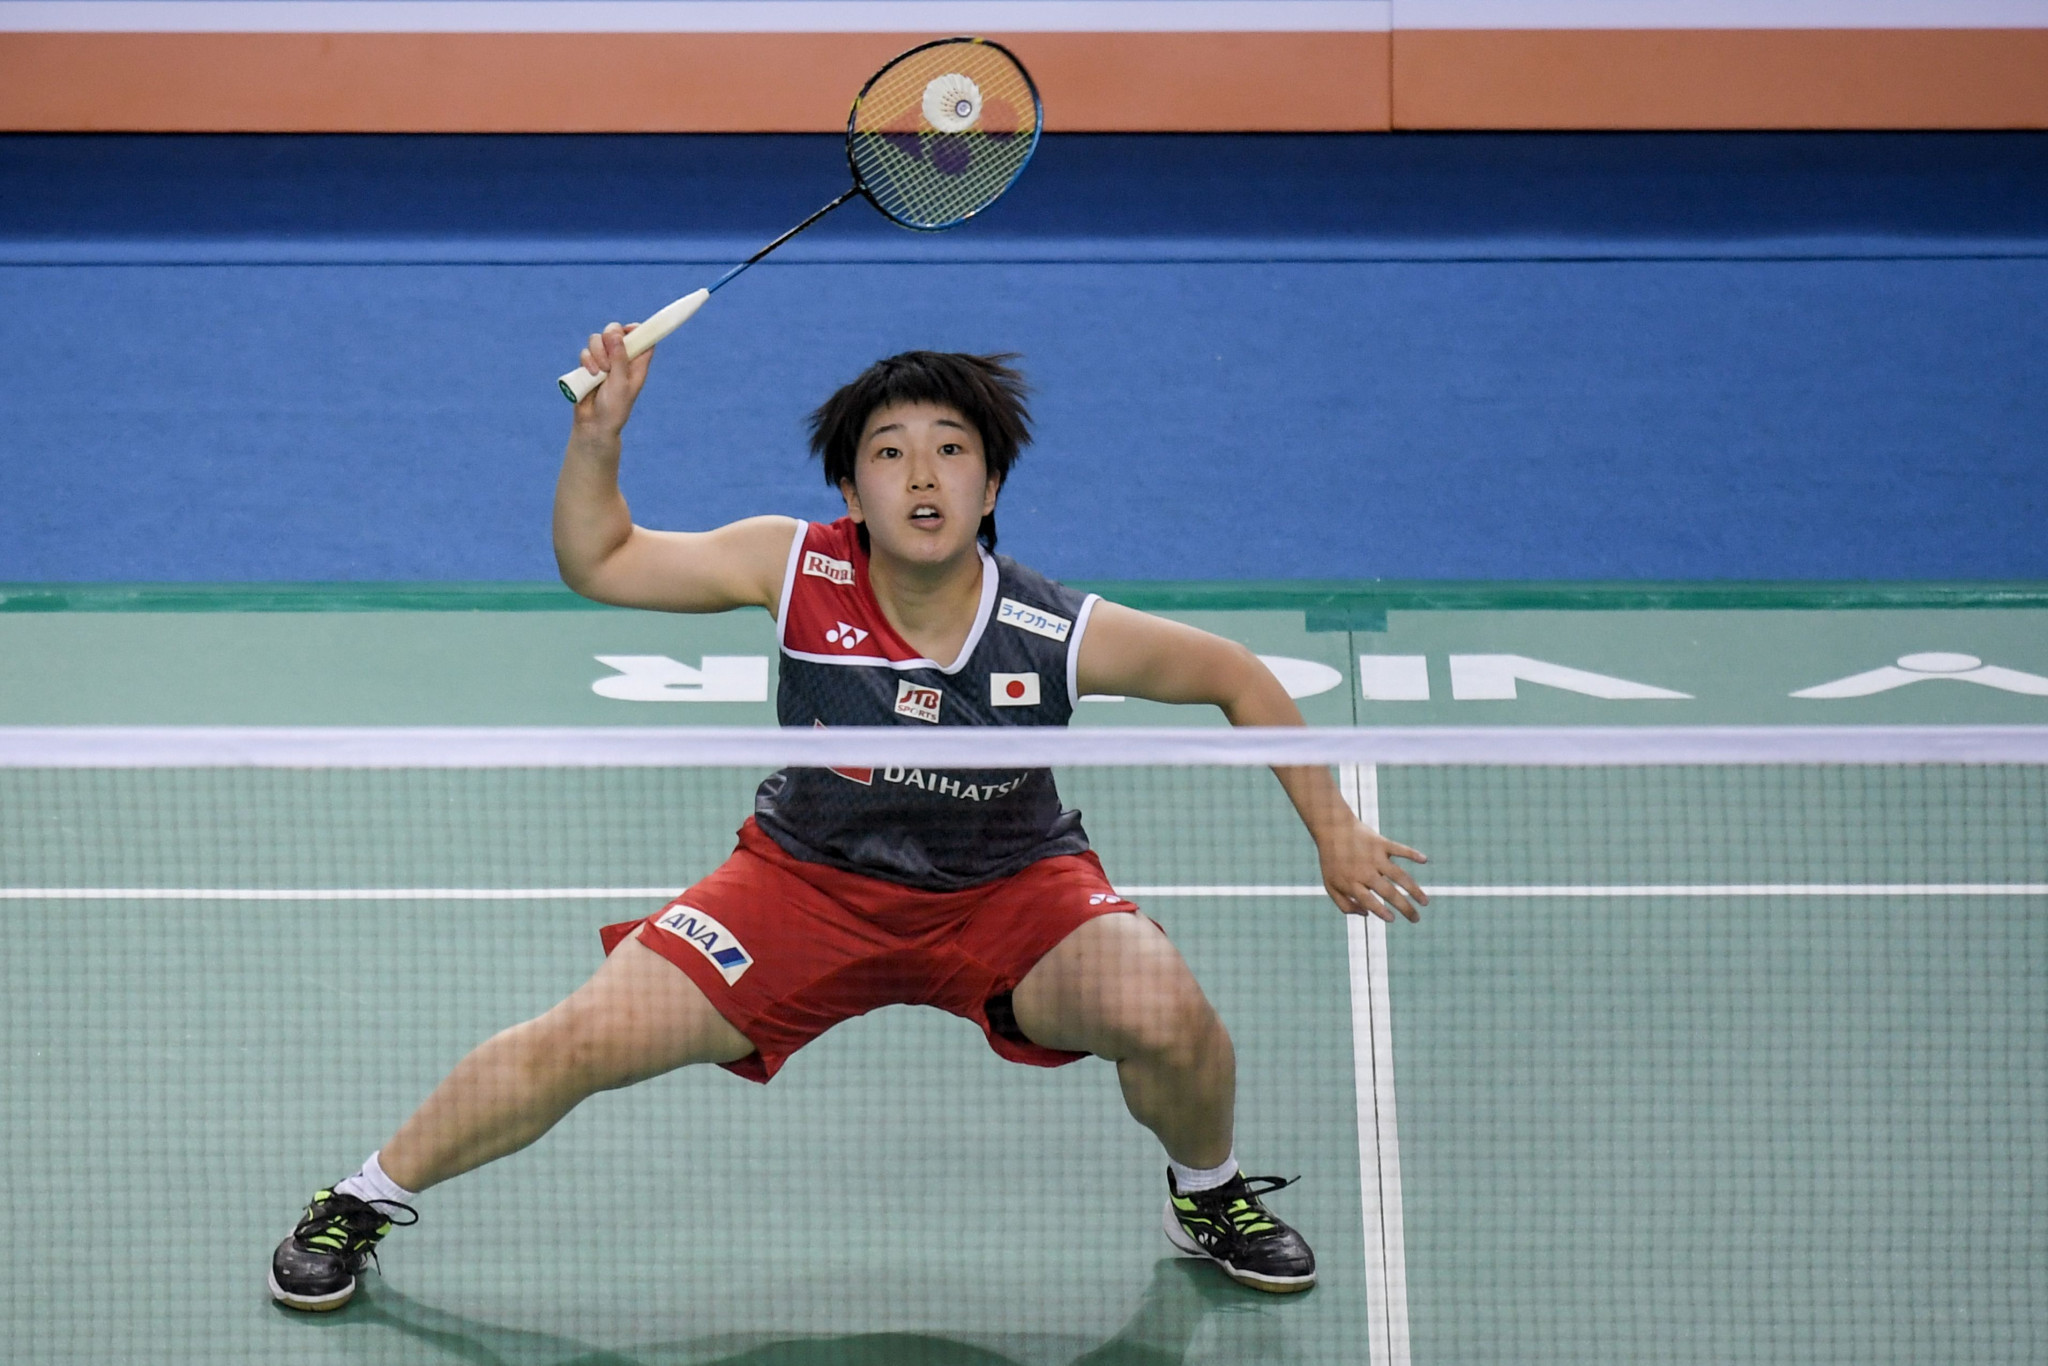 Akane Yamaguchi of Japan beat Tai Tzu Ying of Chinese Taipei to win the final of the BWF French Open in Paris ©Getty Images